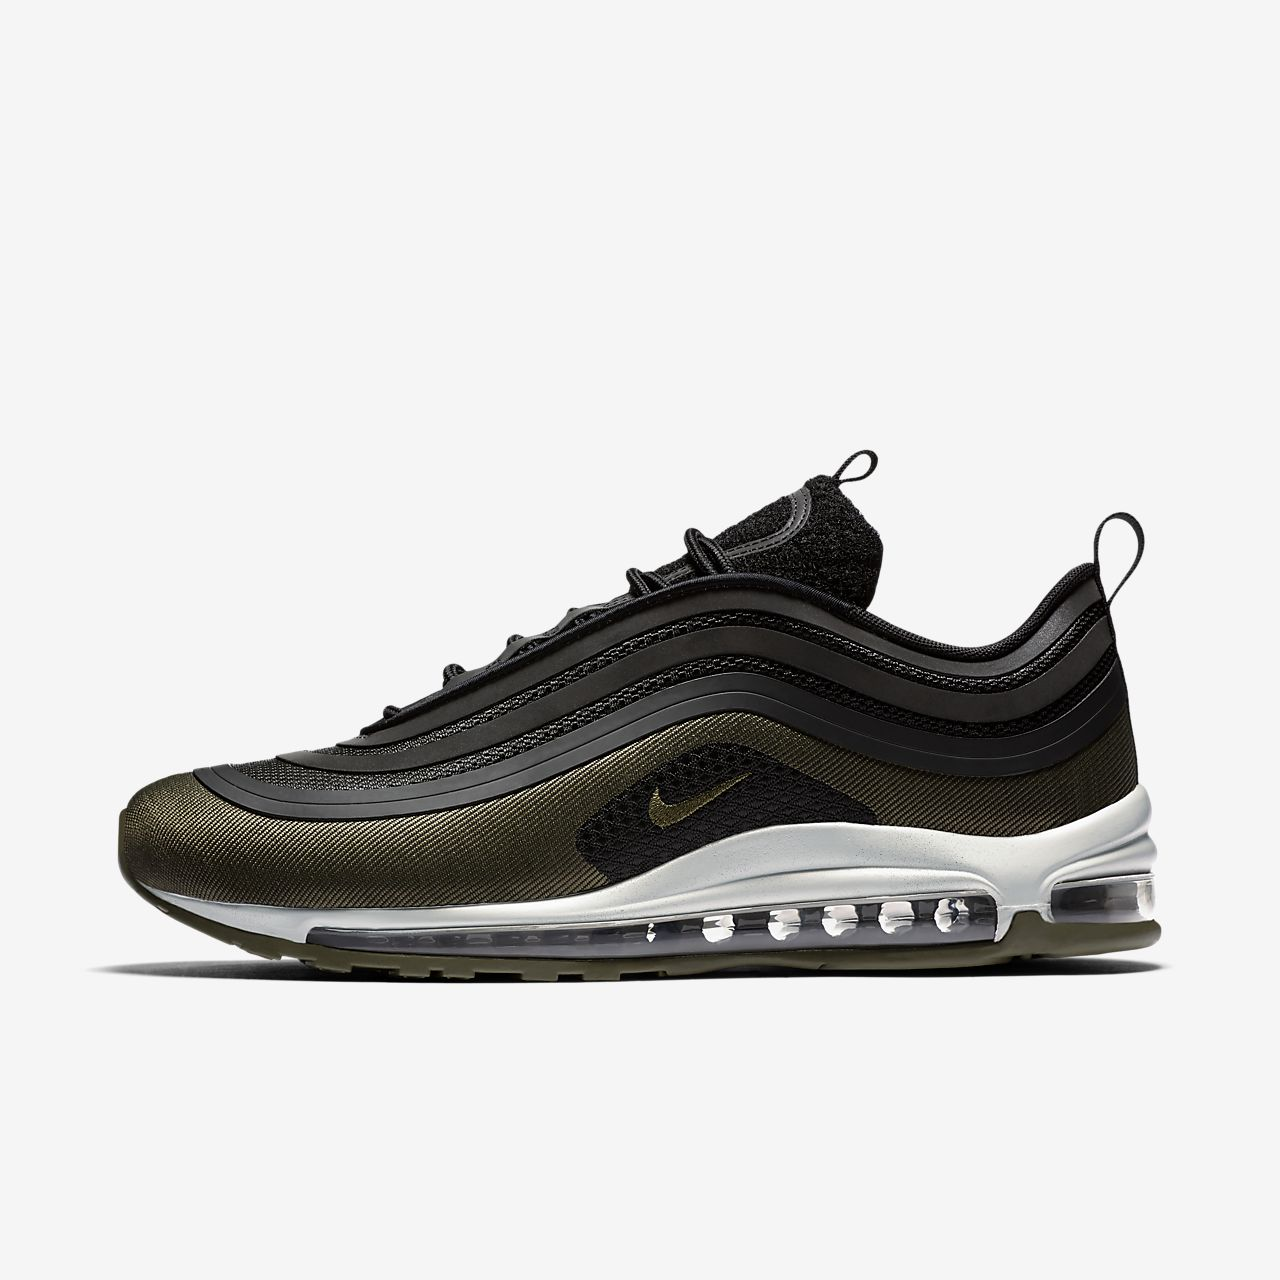 Nike Air Max 97 OG QS Footlocker